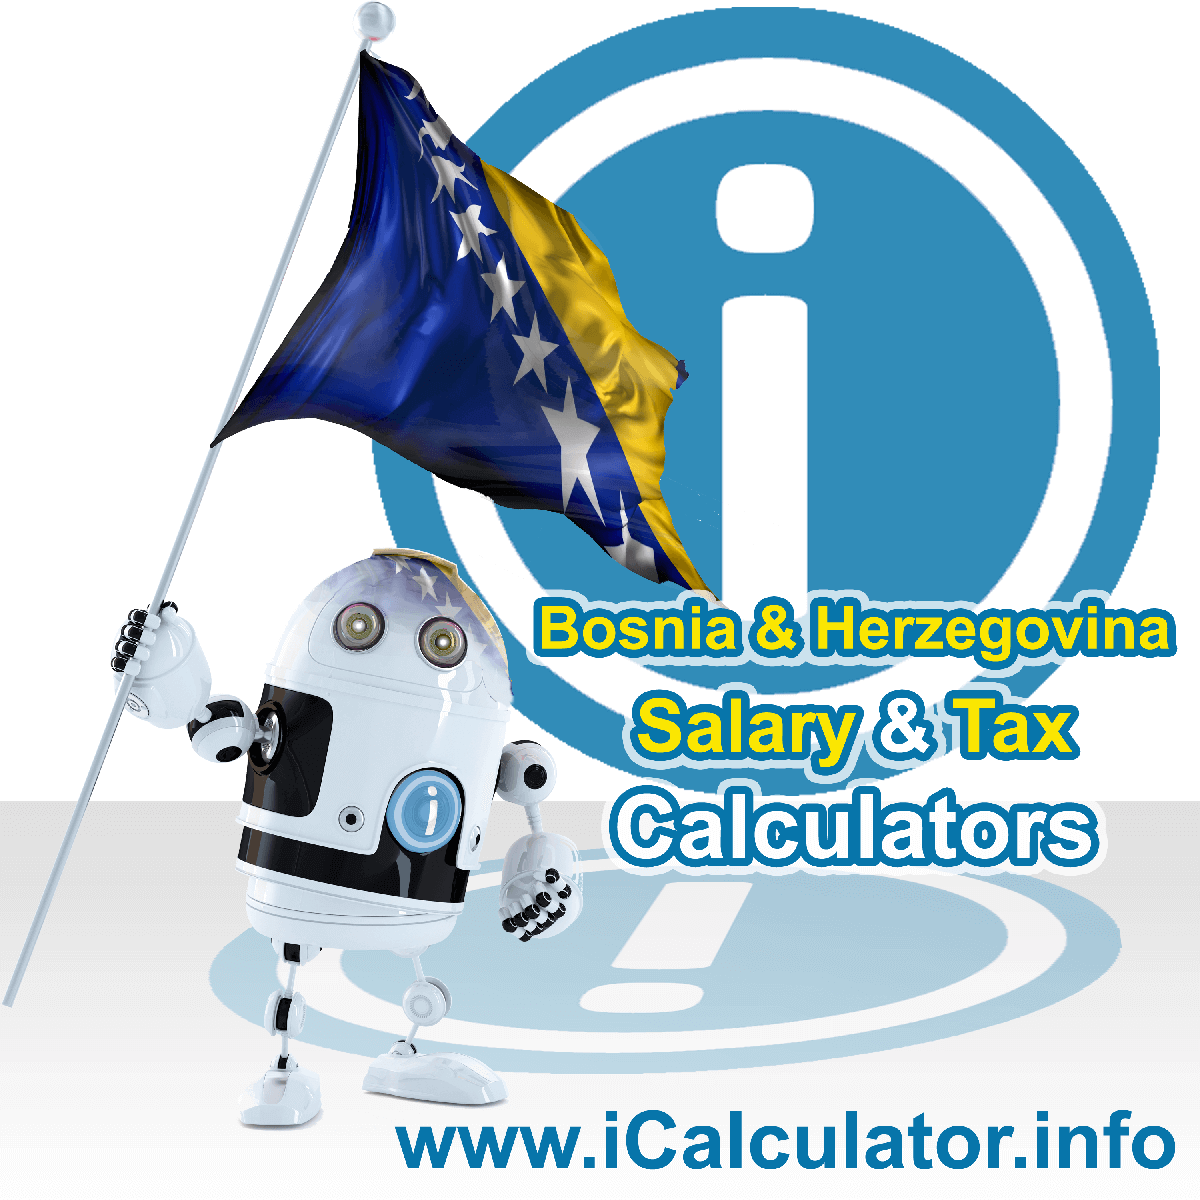 Bosnia And Herzegovina Tax Calculator. This image shows the Bosnia And Herzegovina flag and information relating to the tax formula for the Bosnia And Herzegovina Salary Calculator